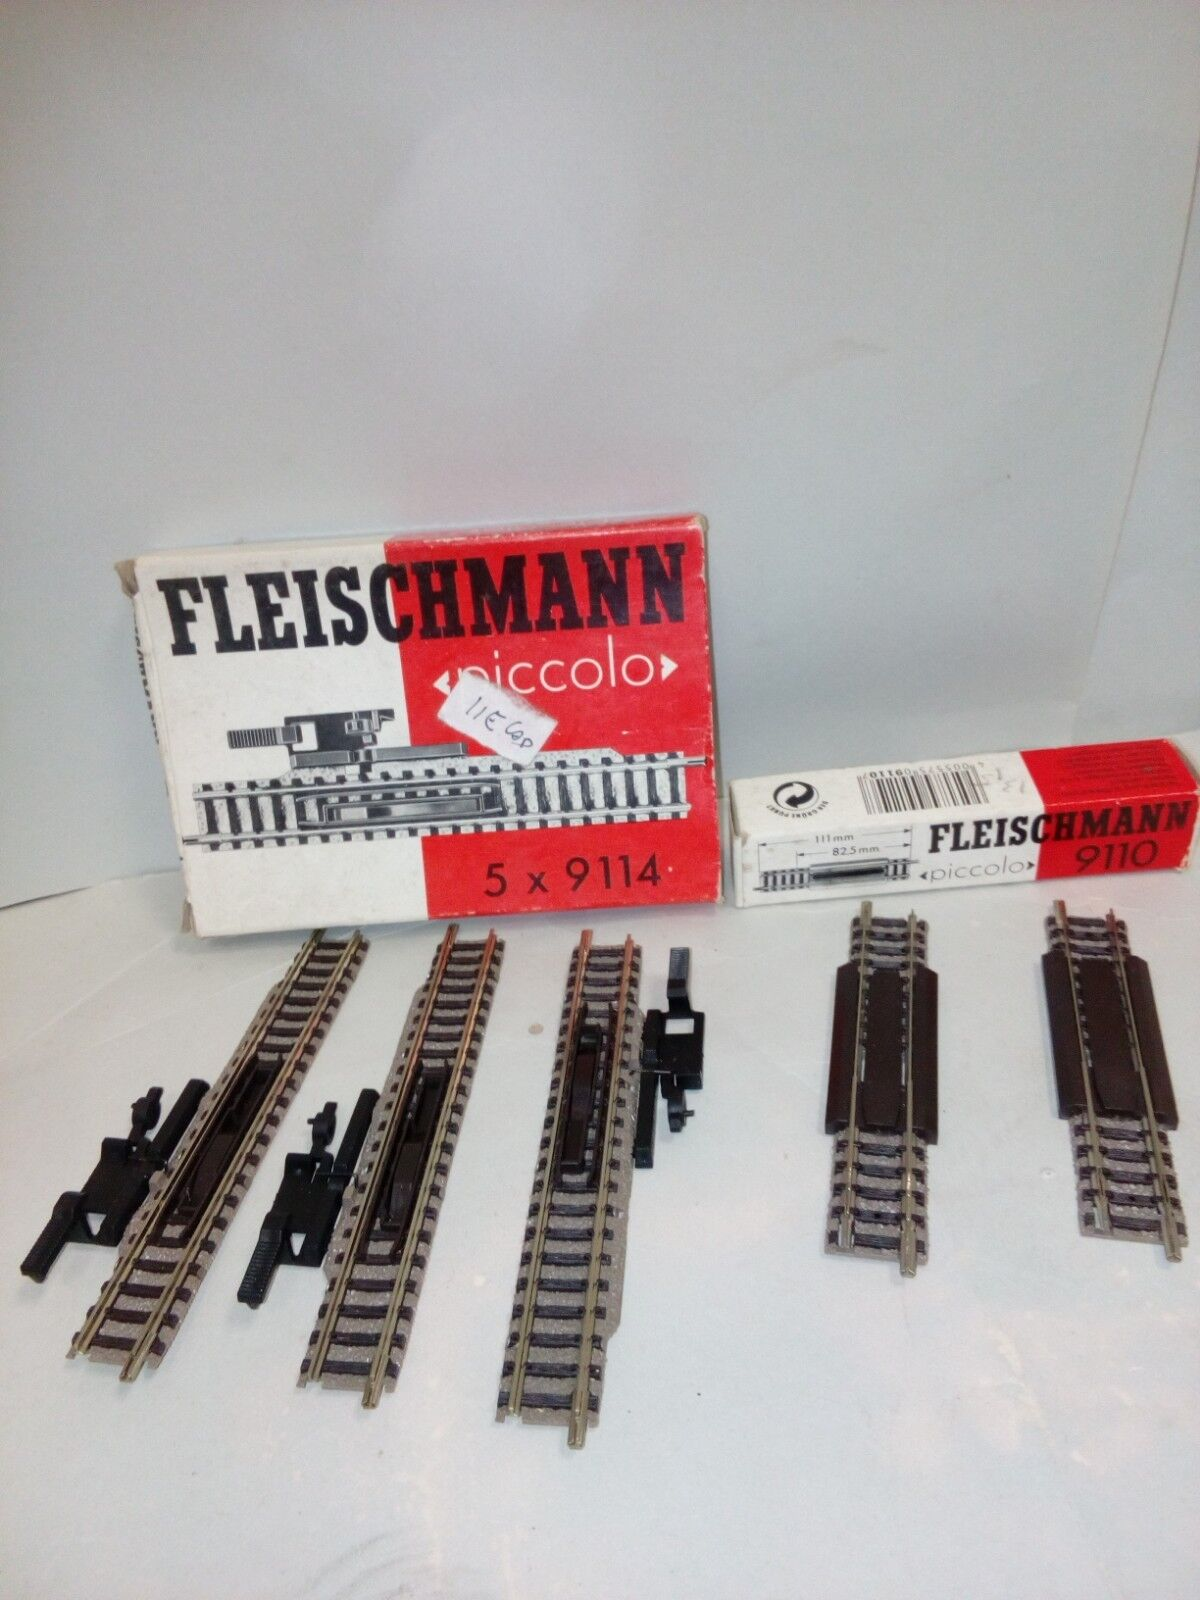 FLEISCHMANN 9110 9114  ASSORTITED LIKE NEW   COME NUOVE .N SCALE